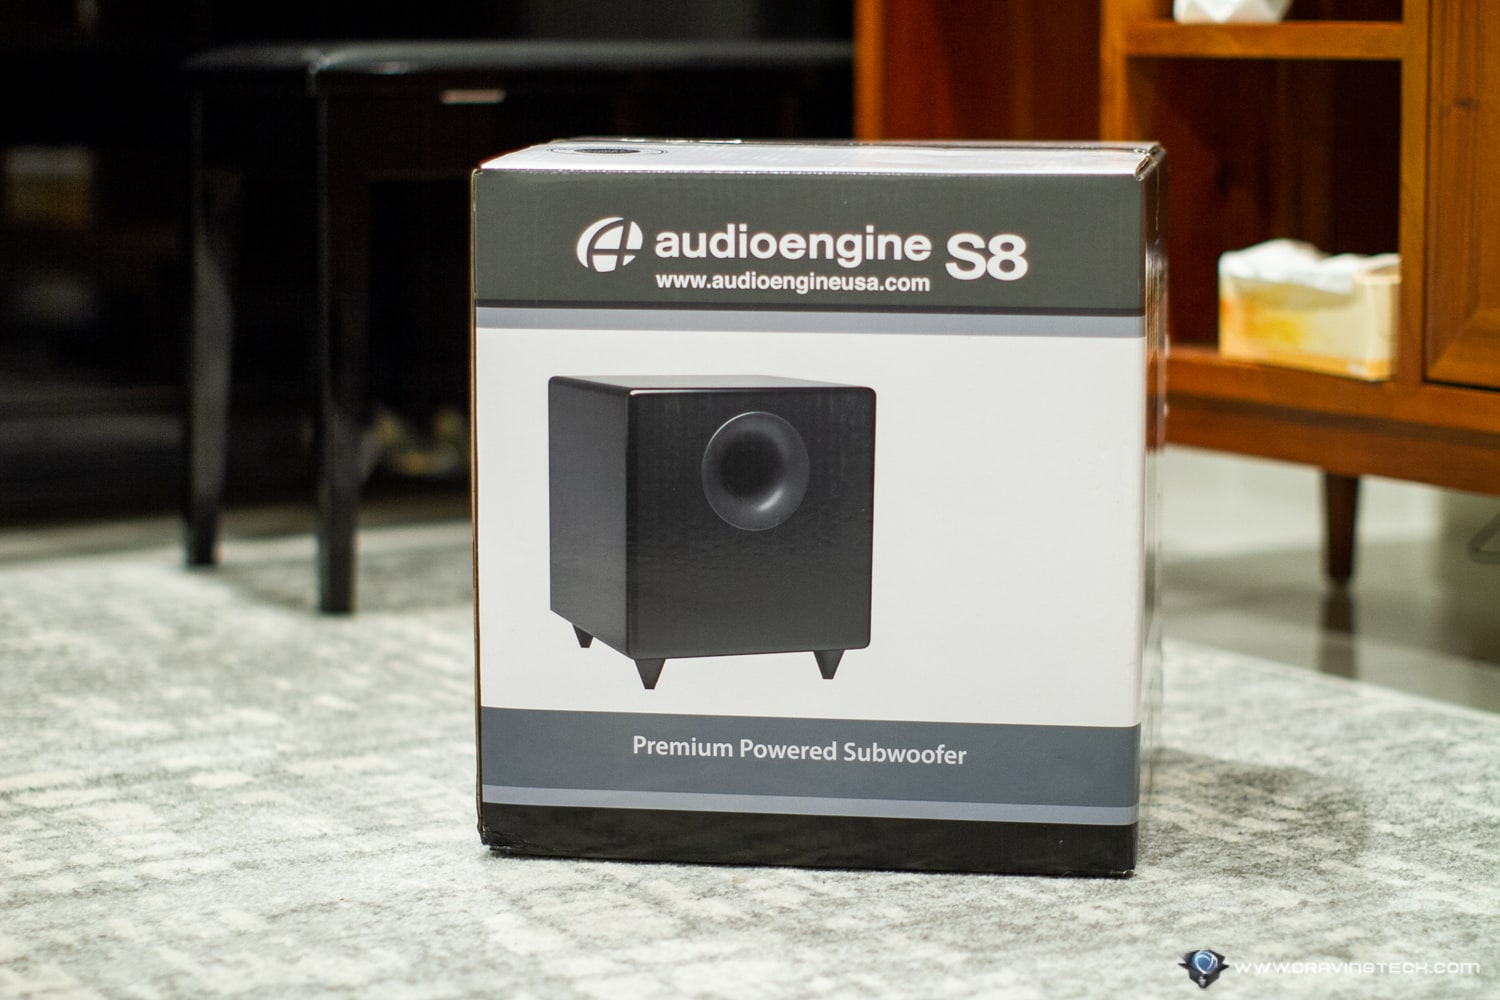 AudioEngine S8 Packaging